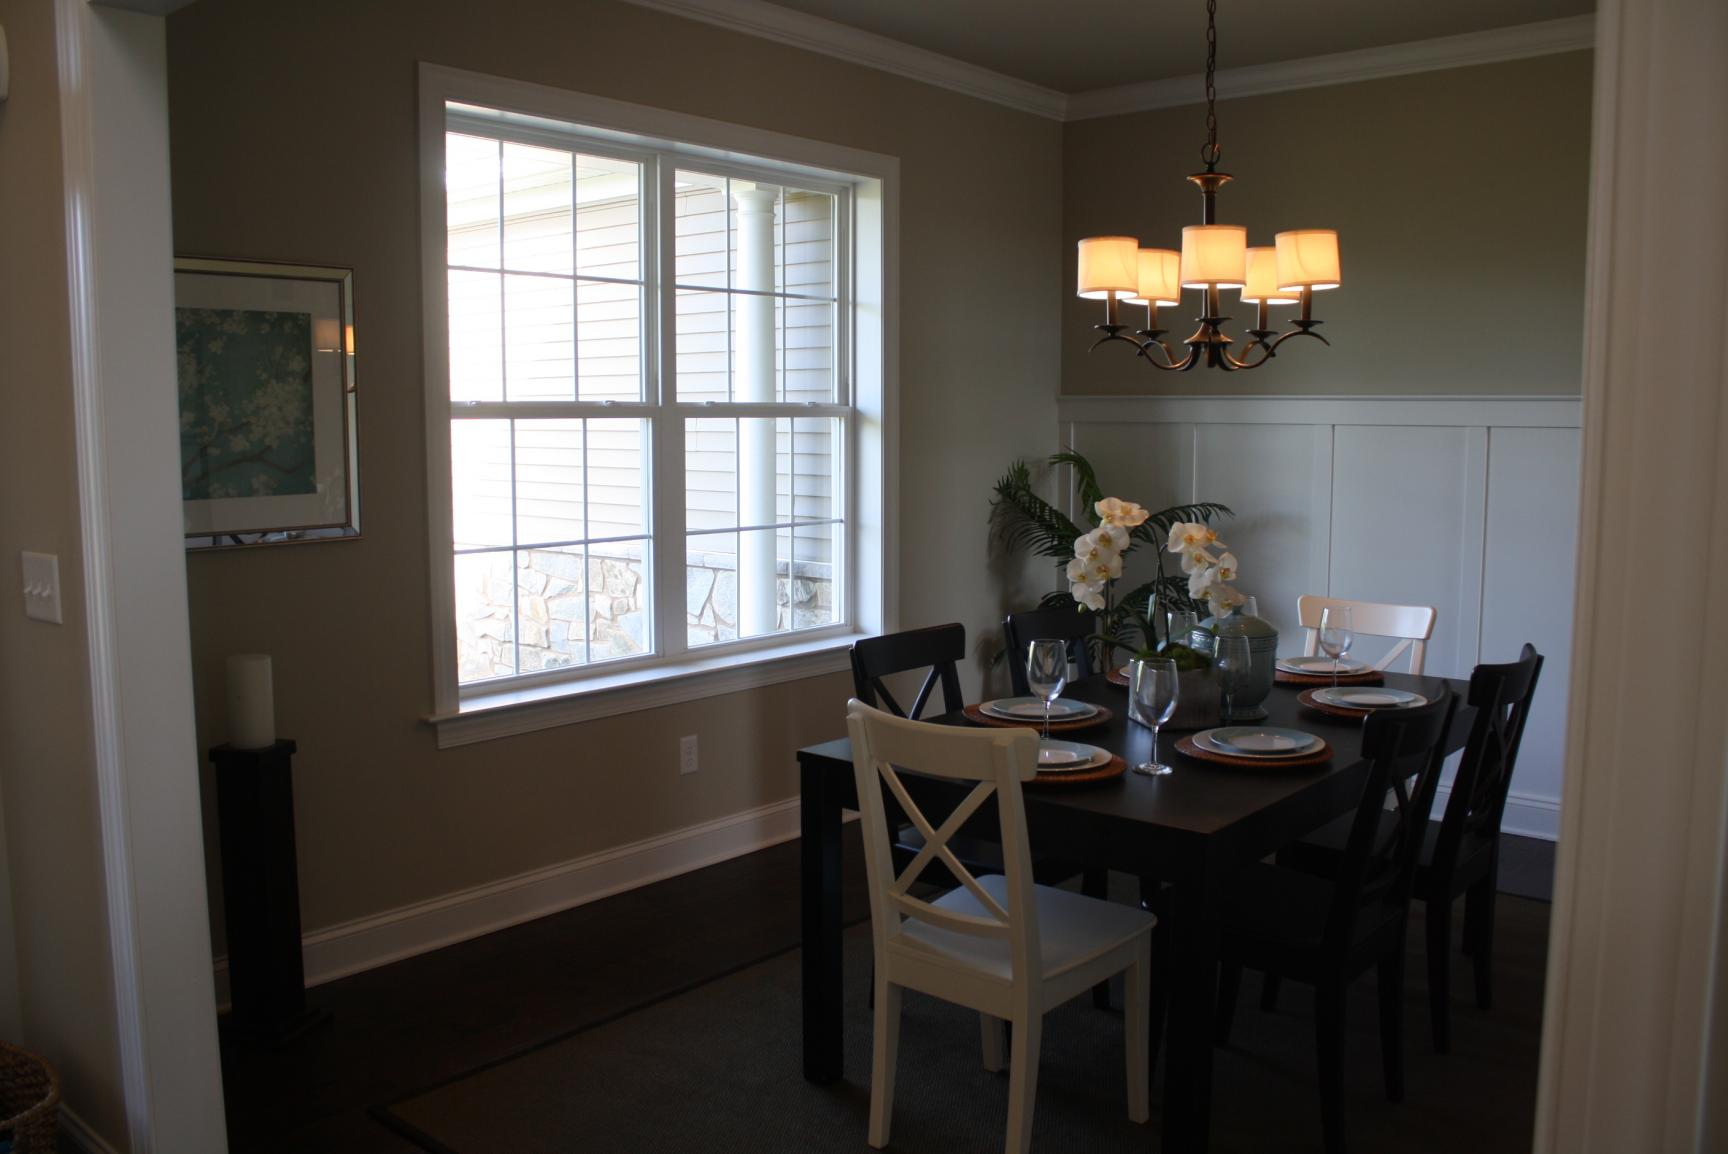 windows in a dining room